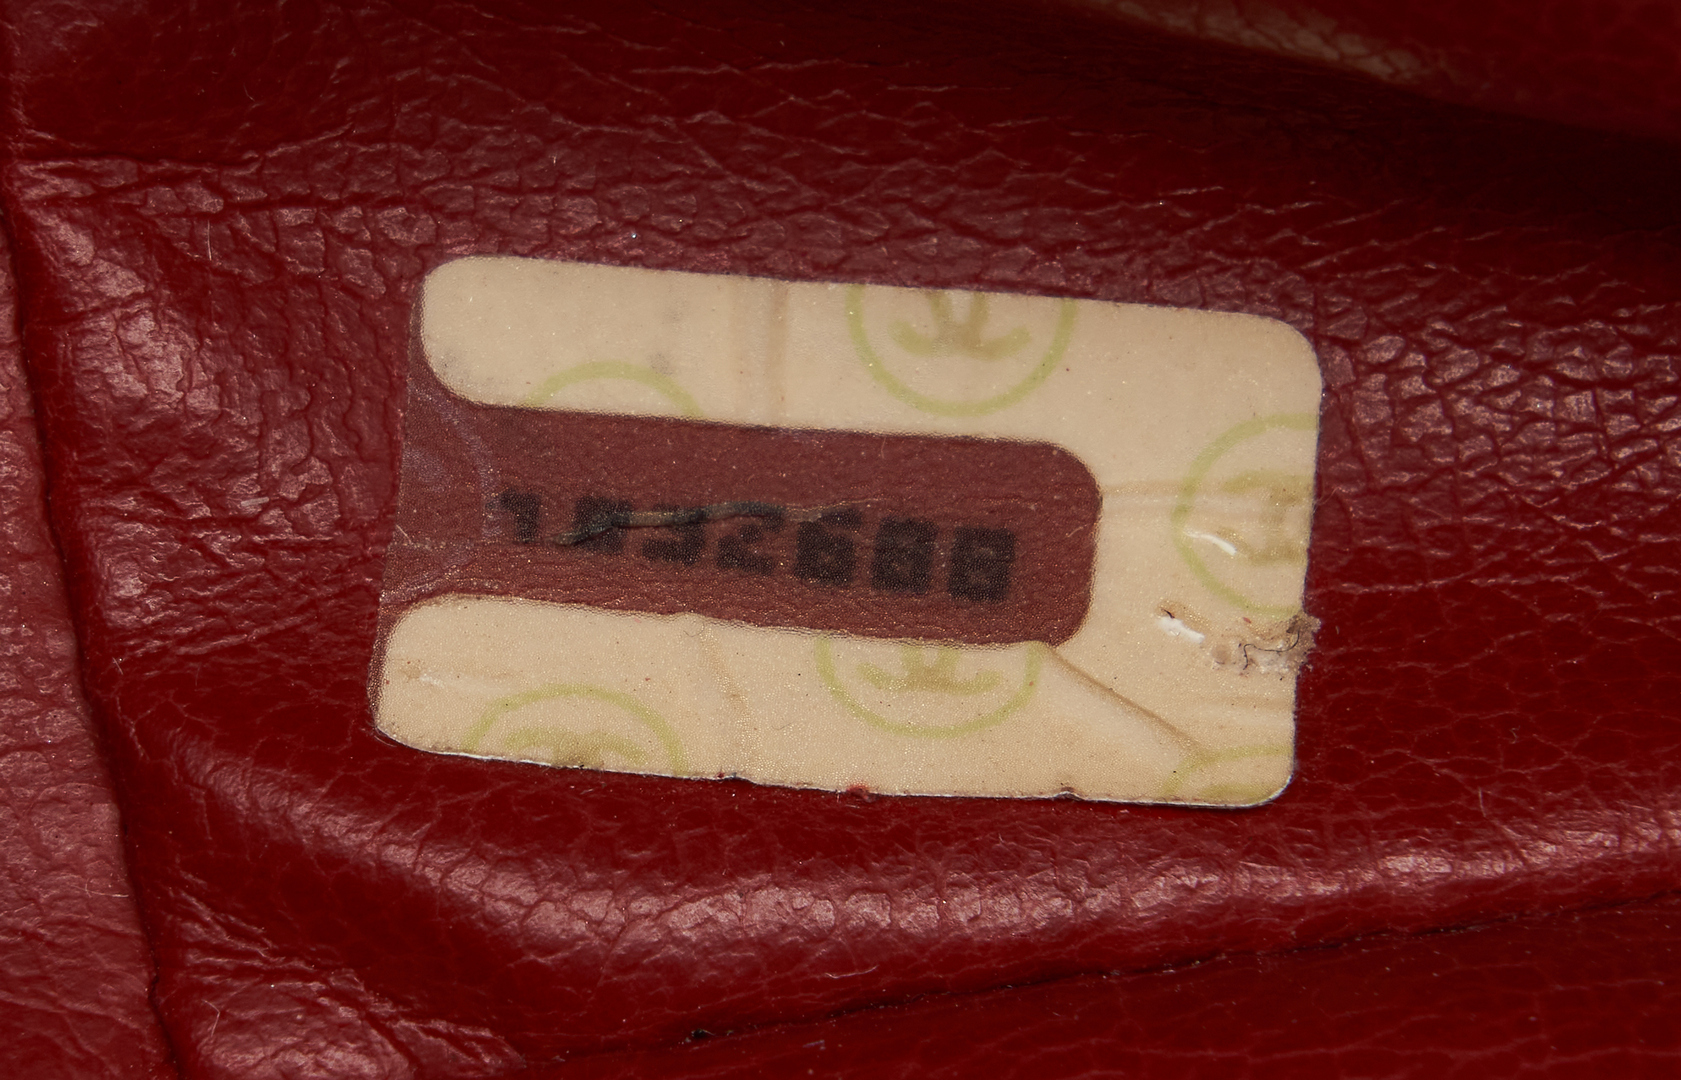 Lot 705: Chanel Leather Fashion Accessories, incl. Purse, Gloves